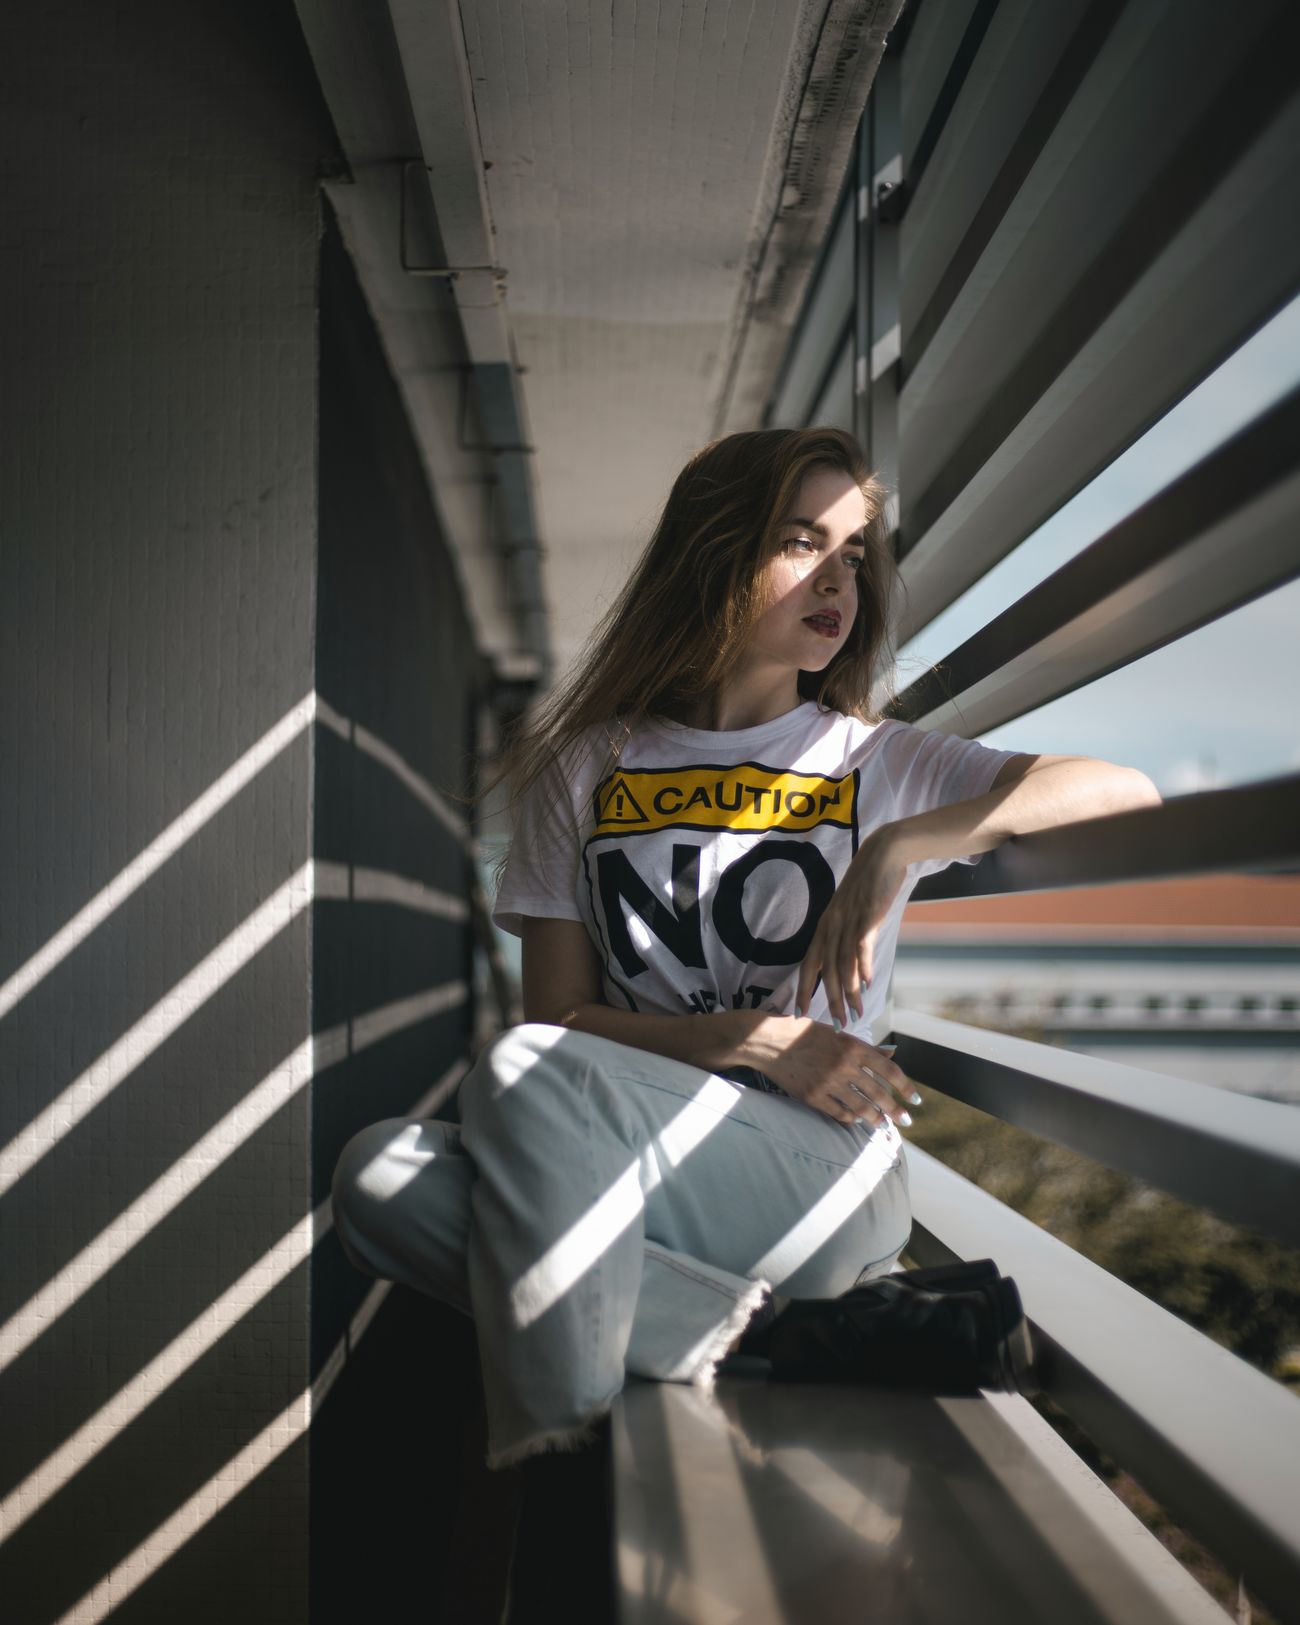 Carpark hangs Indoors  Light And Shadow Natural Light Portrait Light Beautiful People Women Of EyeEm Side Profile Portraits Of EyeEm Portrait Of A Girl Portrait Of A Woman Portrait Photography Fashion Photography Light Rays Women Around The World